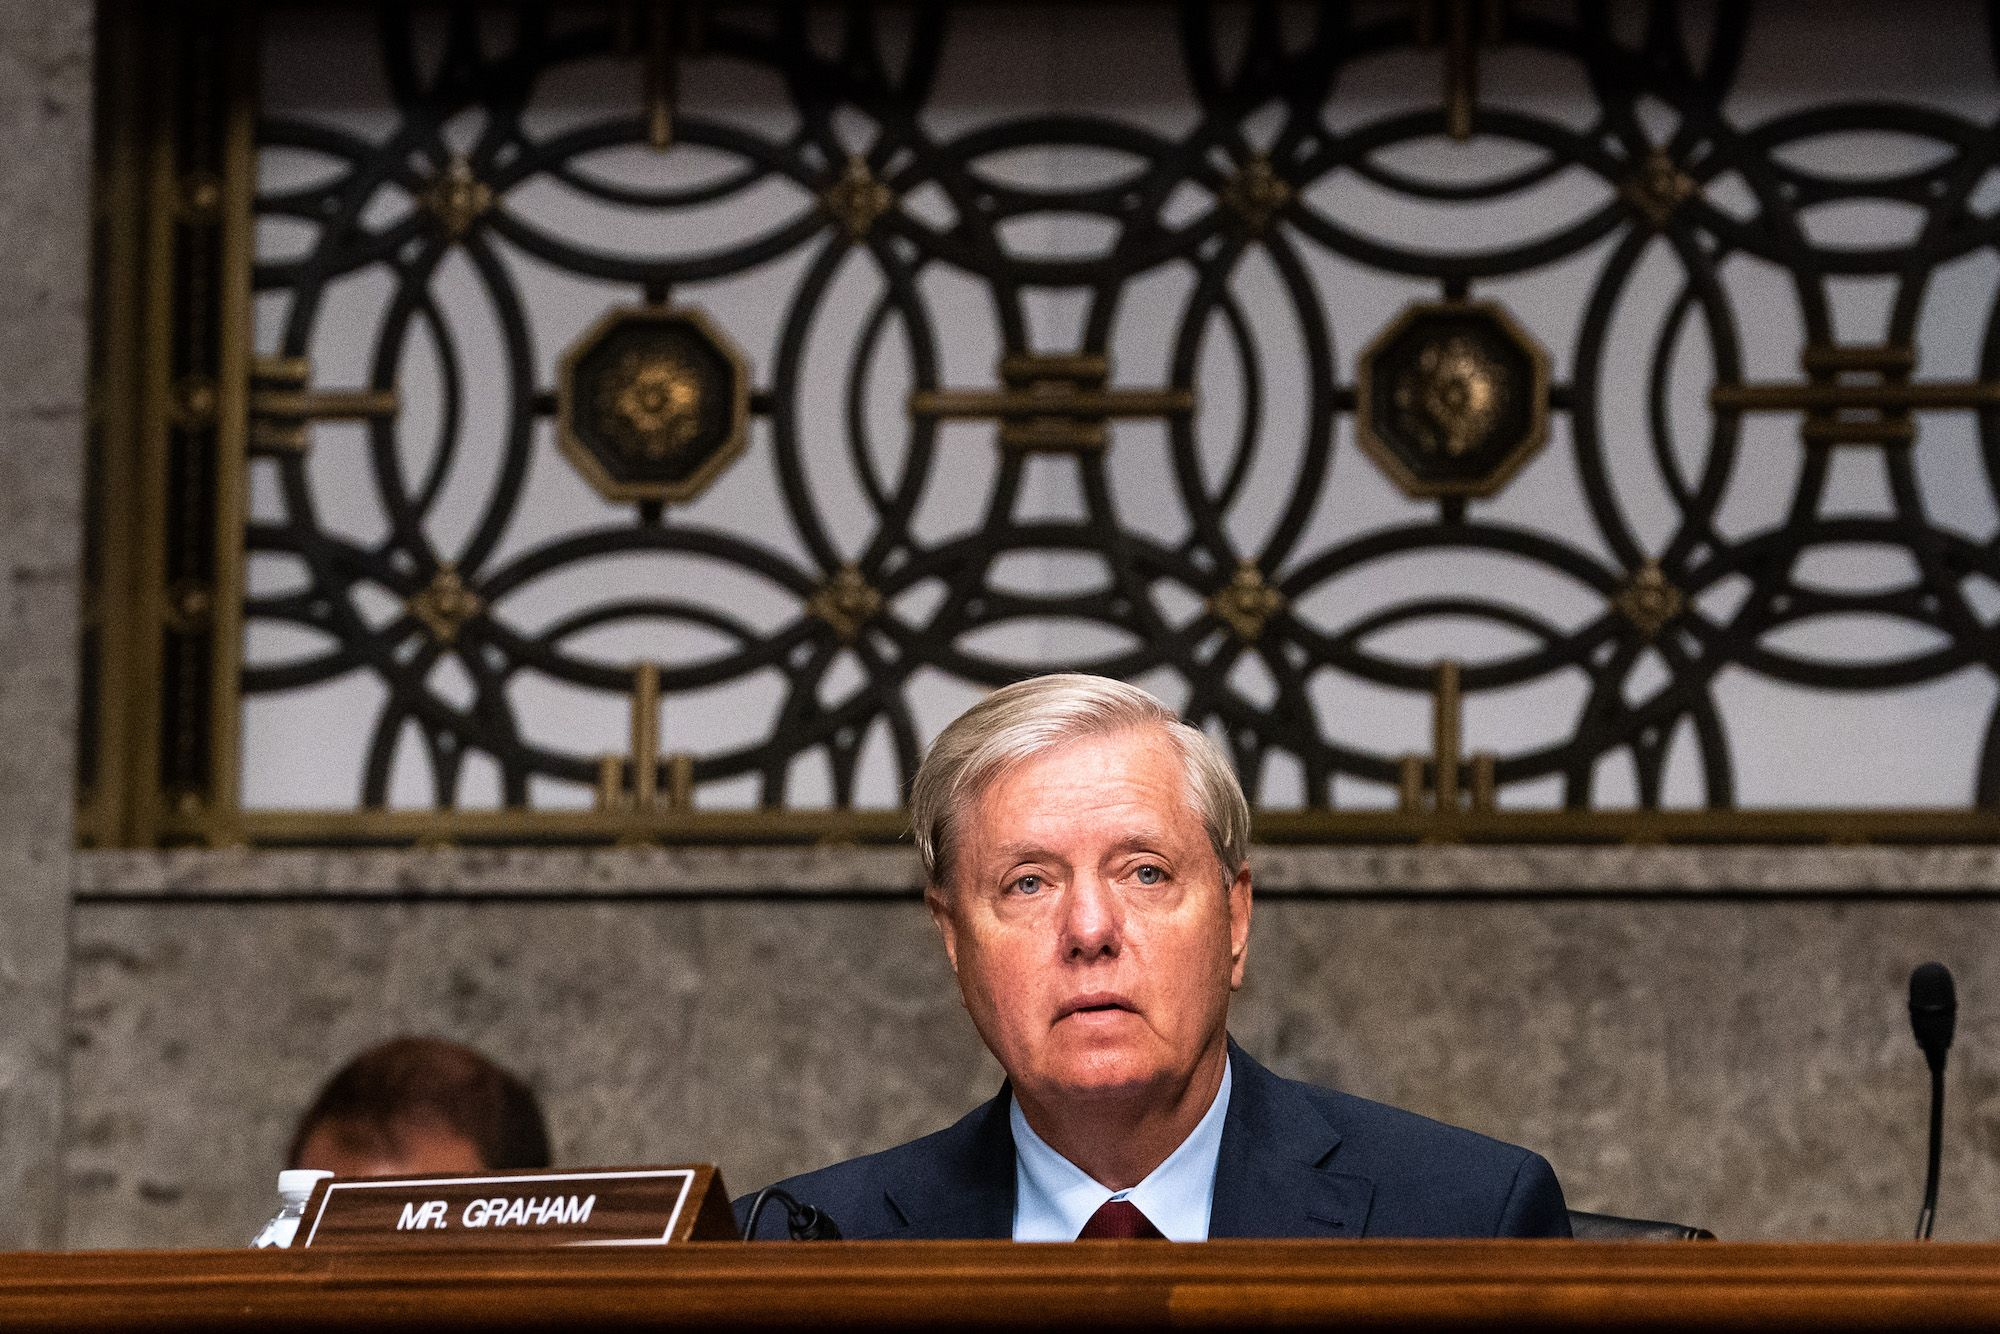 Lindsey Graham Is Pleading for Cash Like a Televangelist Peddling Miracle Spring Water